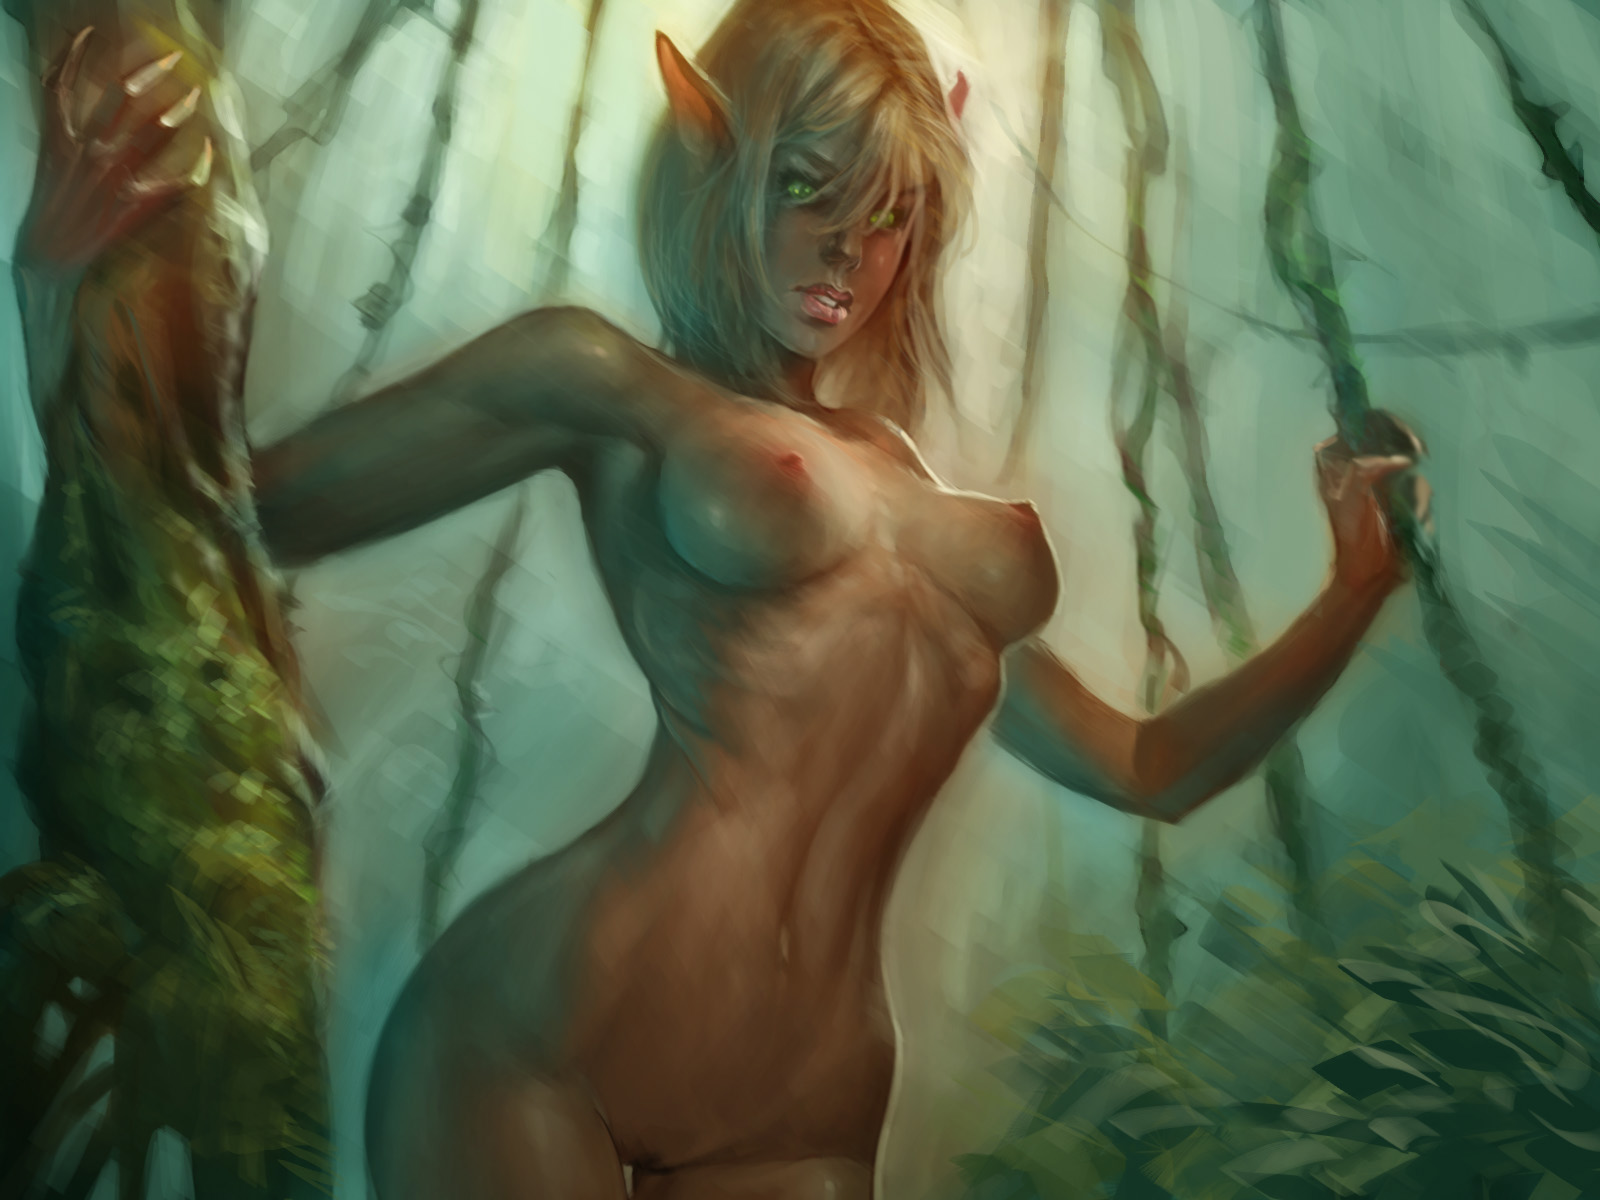 Naked girl elf pictures nackt photo